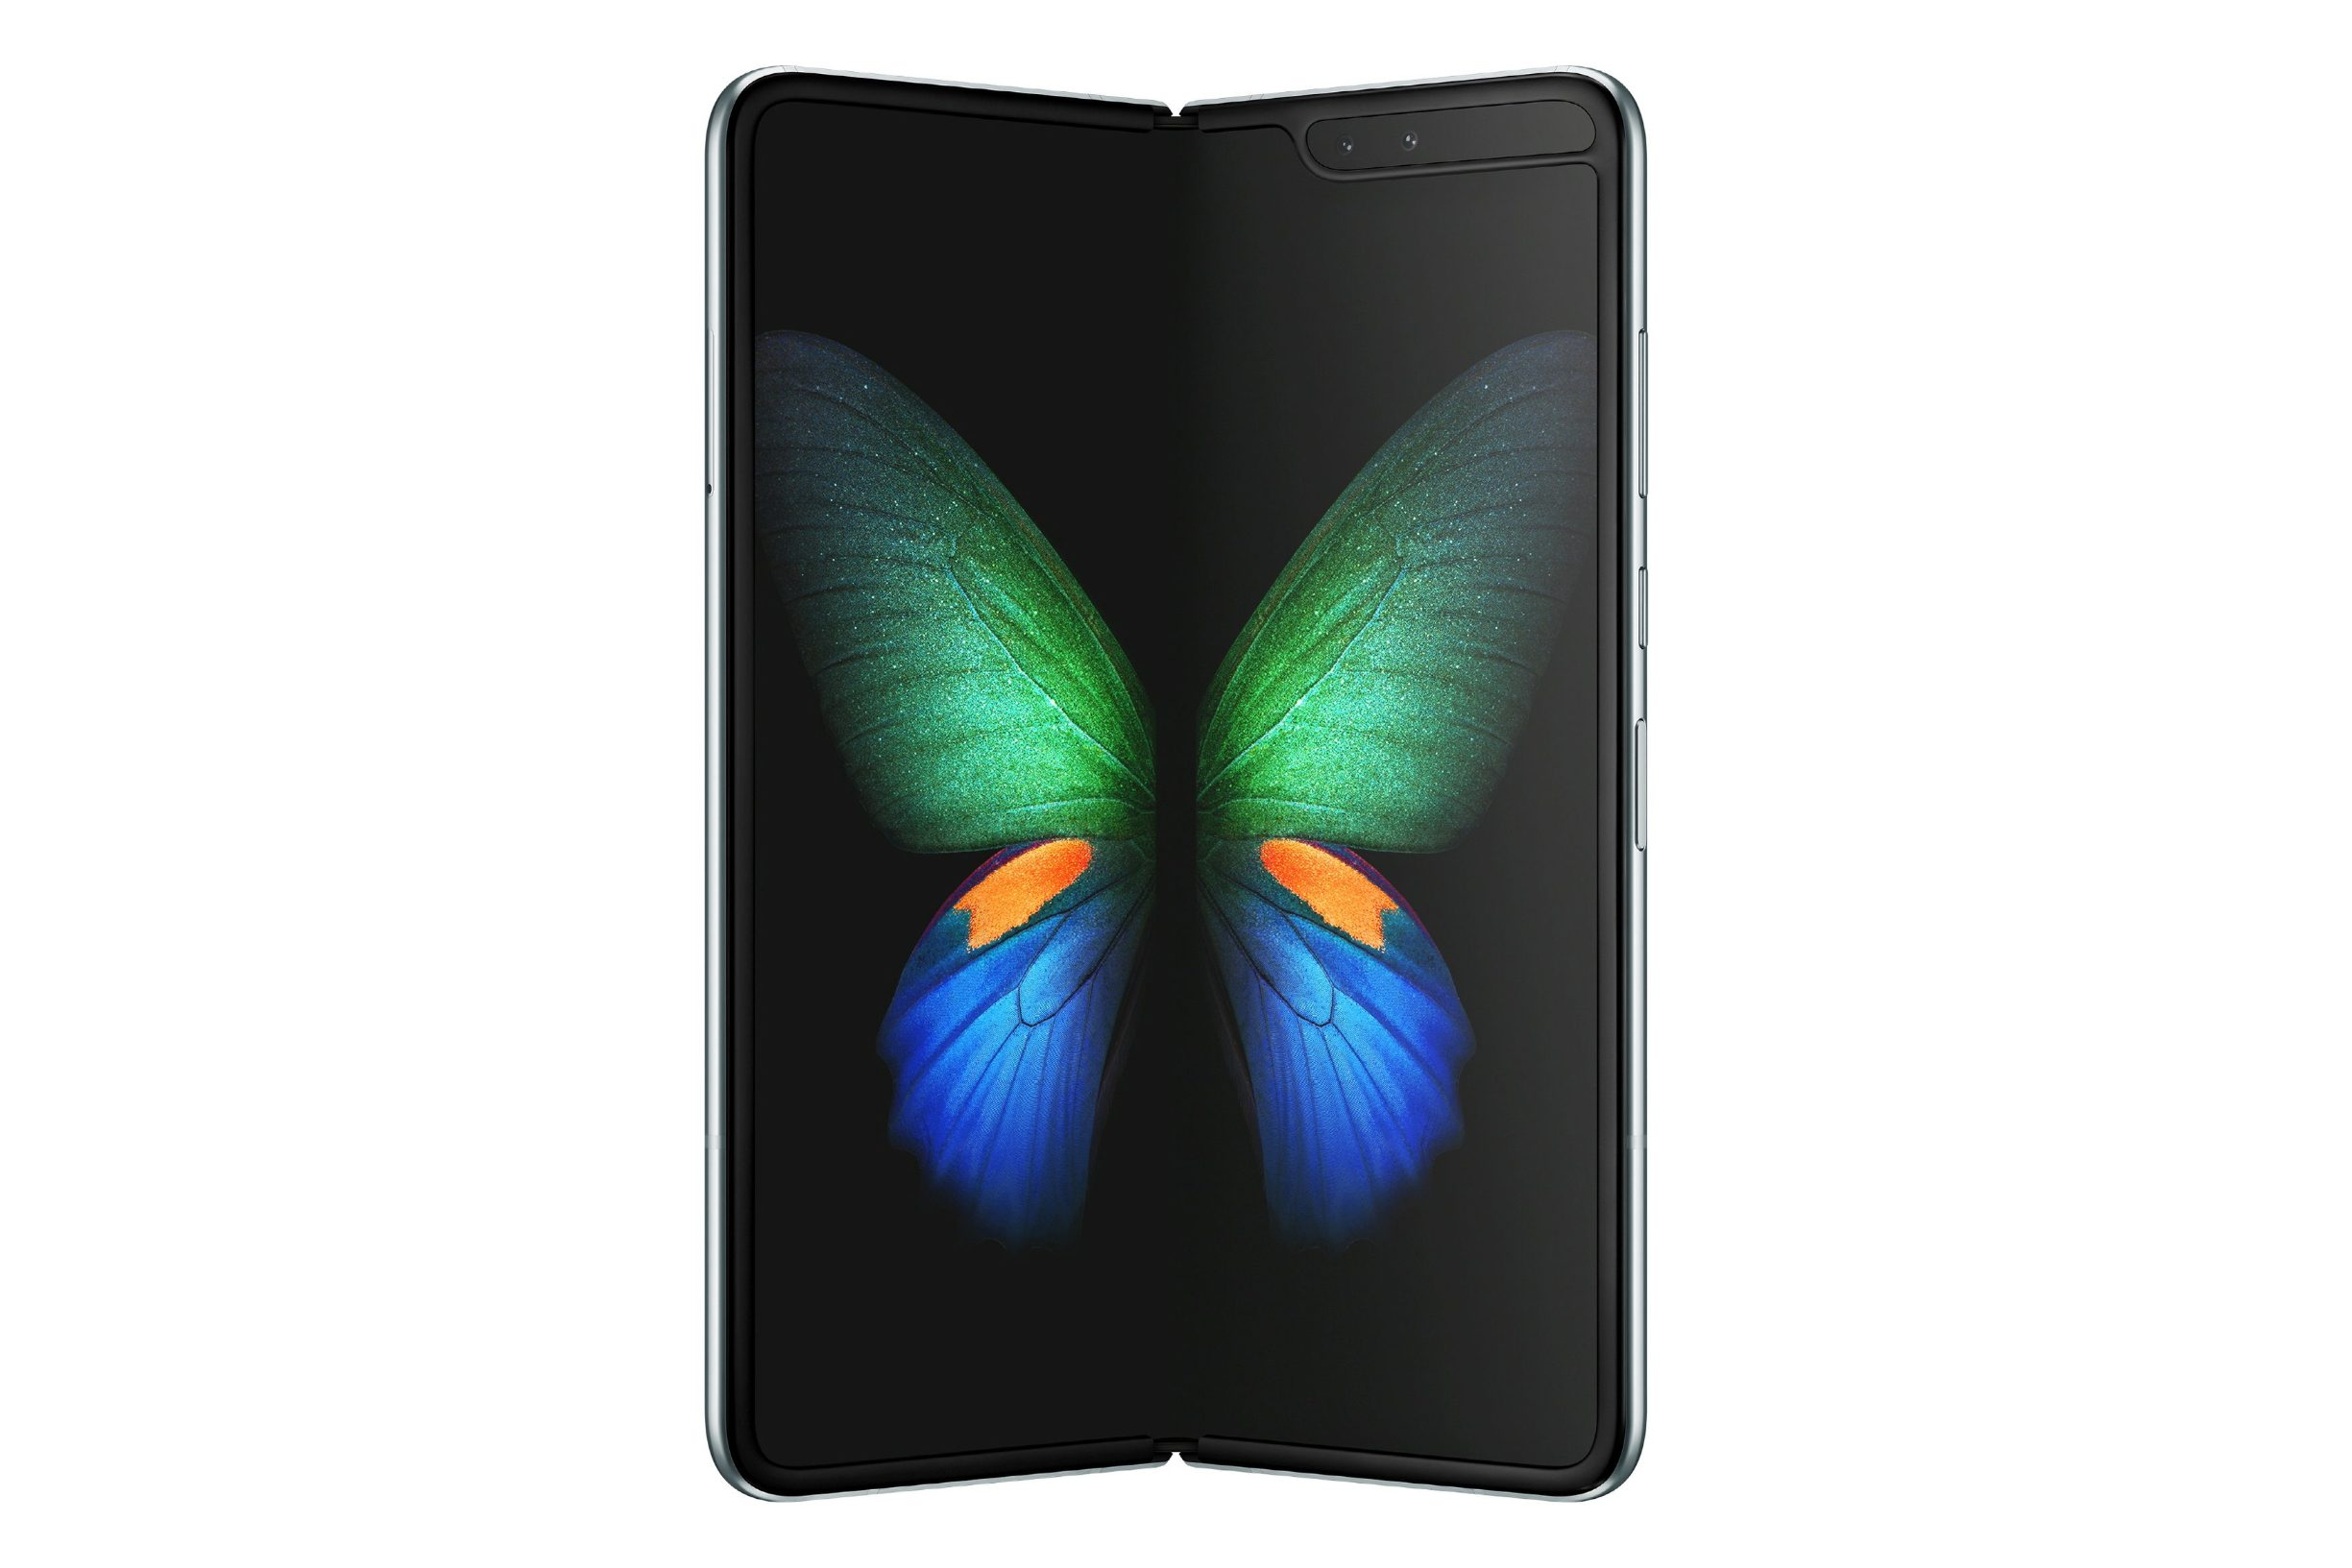 Samsung's new Galaxy Fold smart phone which features the world's first 7.3-inch Infinity Flex Display that works with the next-generation 5G networks is seen in this image released in San Francisco, California, U.S. February 20, 2019.   Courtesy Samsung/Handout via REUTERS  ATTENTION EDITORS - THIS IMAGE HAS BEEN SUPPLIED BY A THIRD PARTY. NO RESALES. NO ARCHIVES.